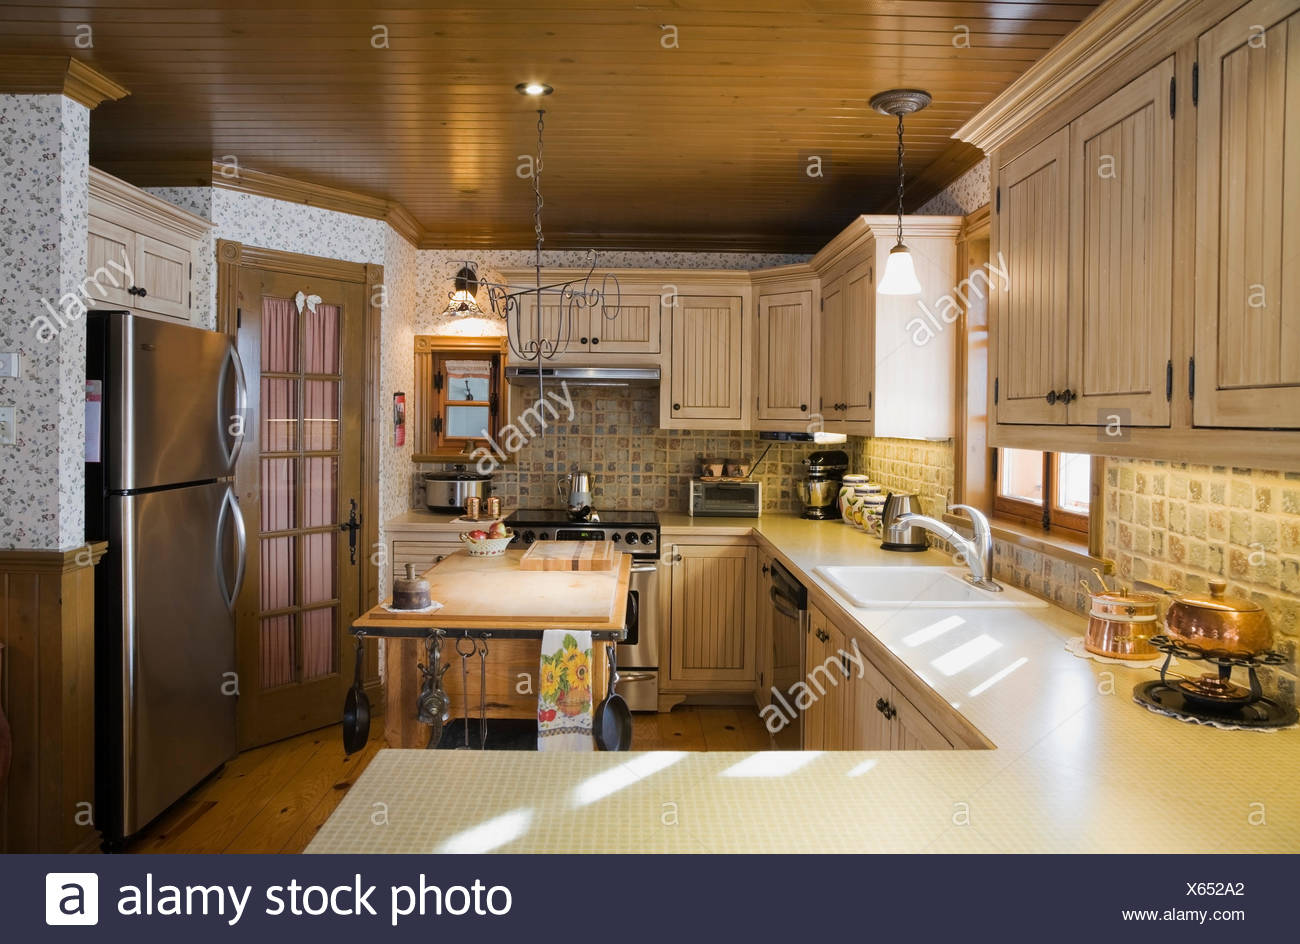 Country Style Kitchen Inside A Canadiana Cottage Style